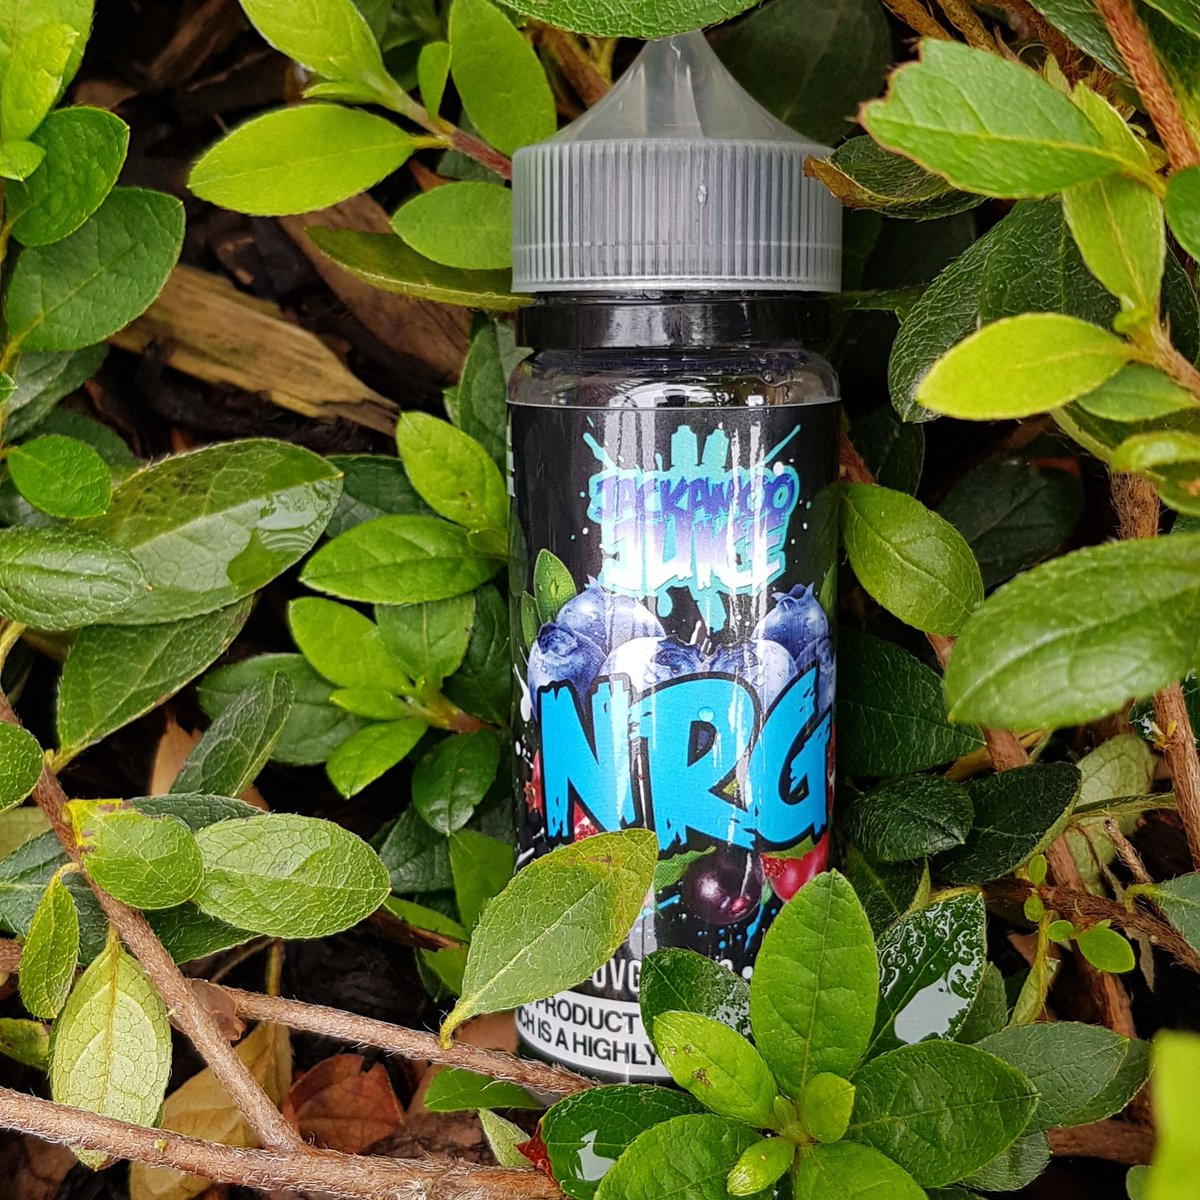 flavours all pre steeped and amazing juices  #vapelife #vape